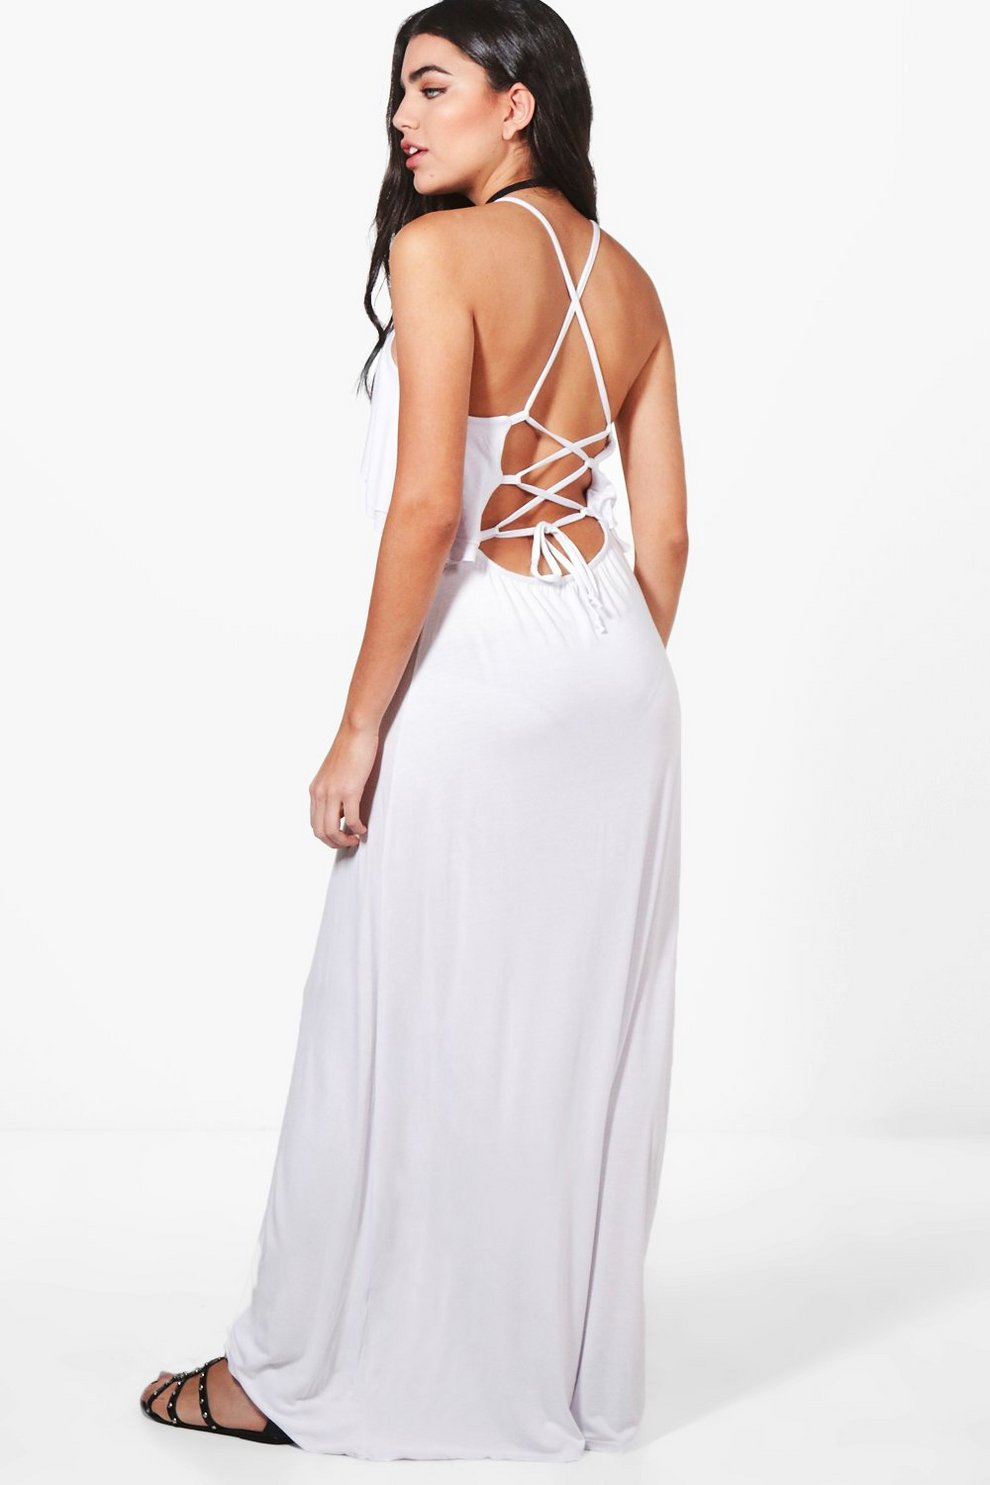 582efc6f520a Womens White Ruffle Lace Up Back Maxi Dress. Hover to zoom